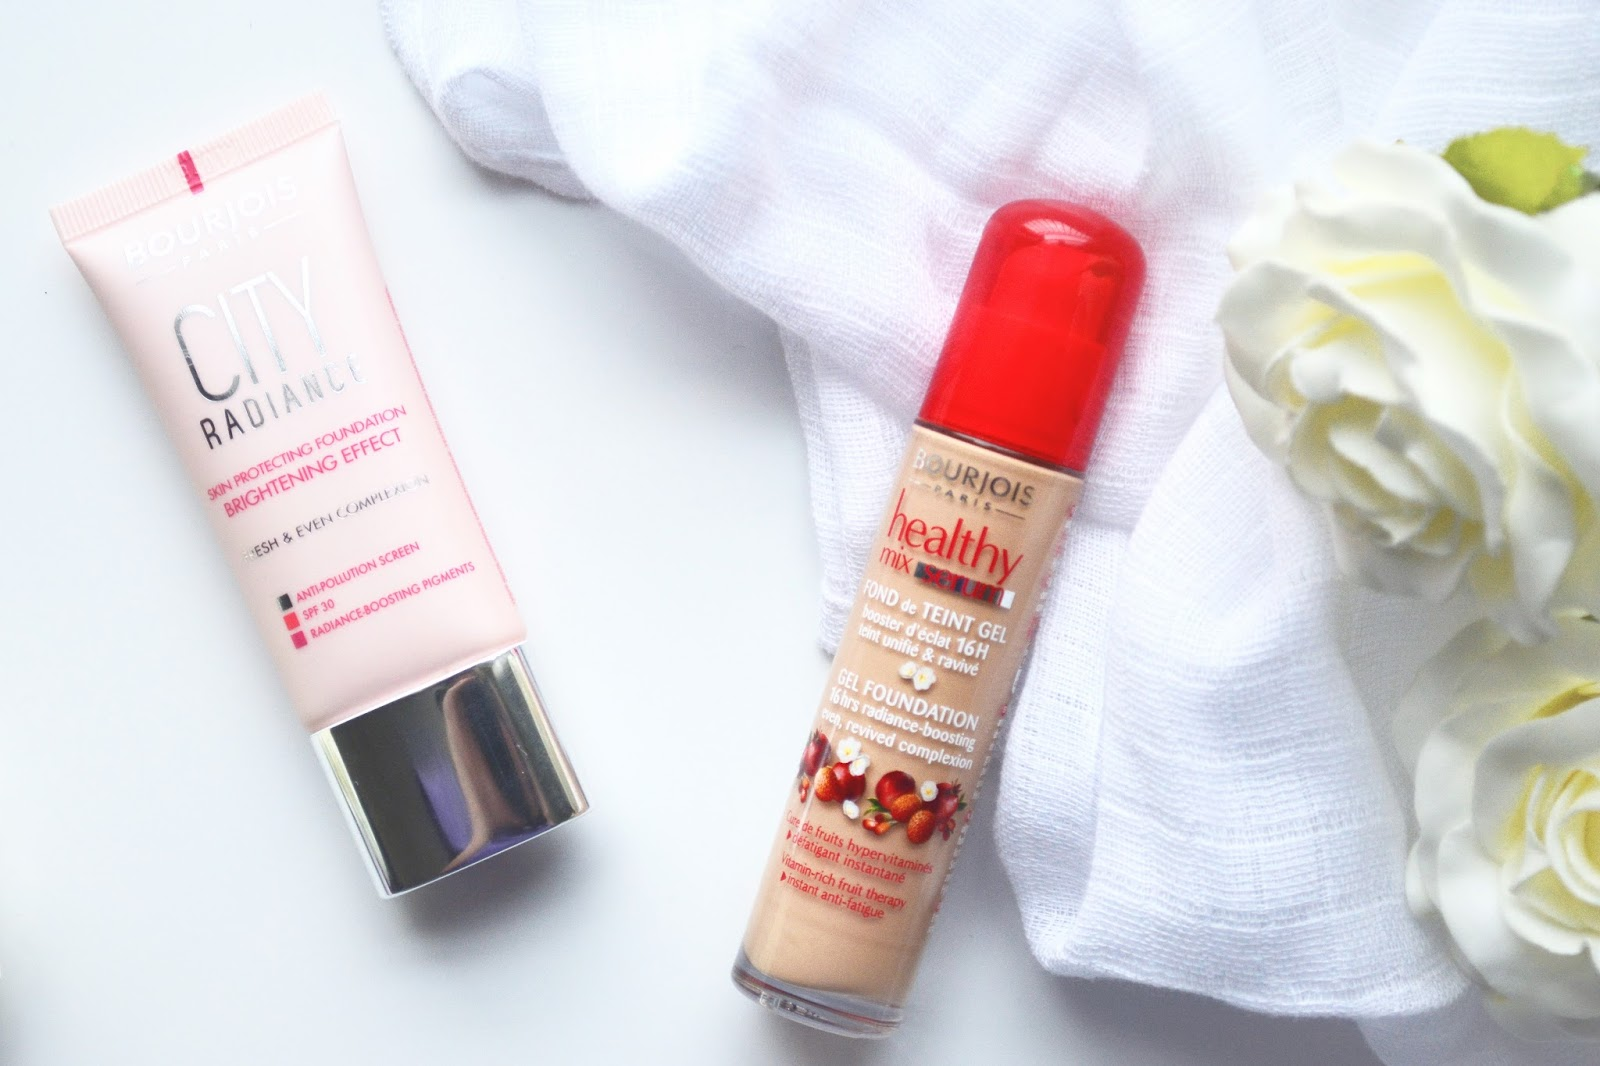 Bourjois, Bourjois Foundation, Bourjois City Radiance, Bourjois Healthy Serum Foundation, Foundation, Dewy Skin,